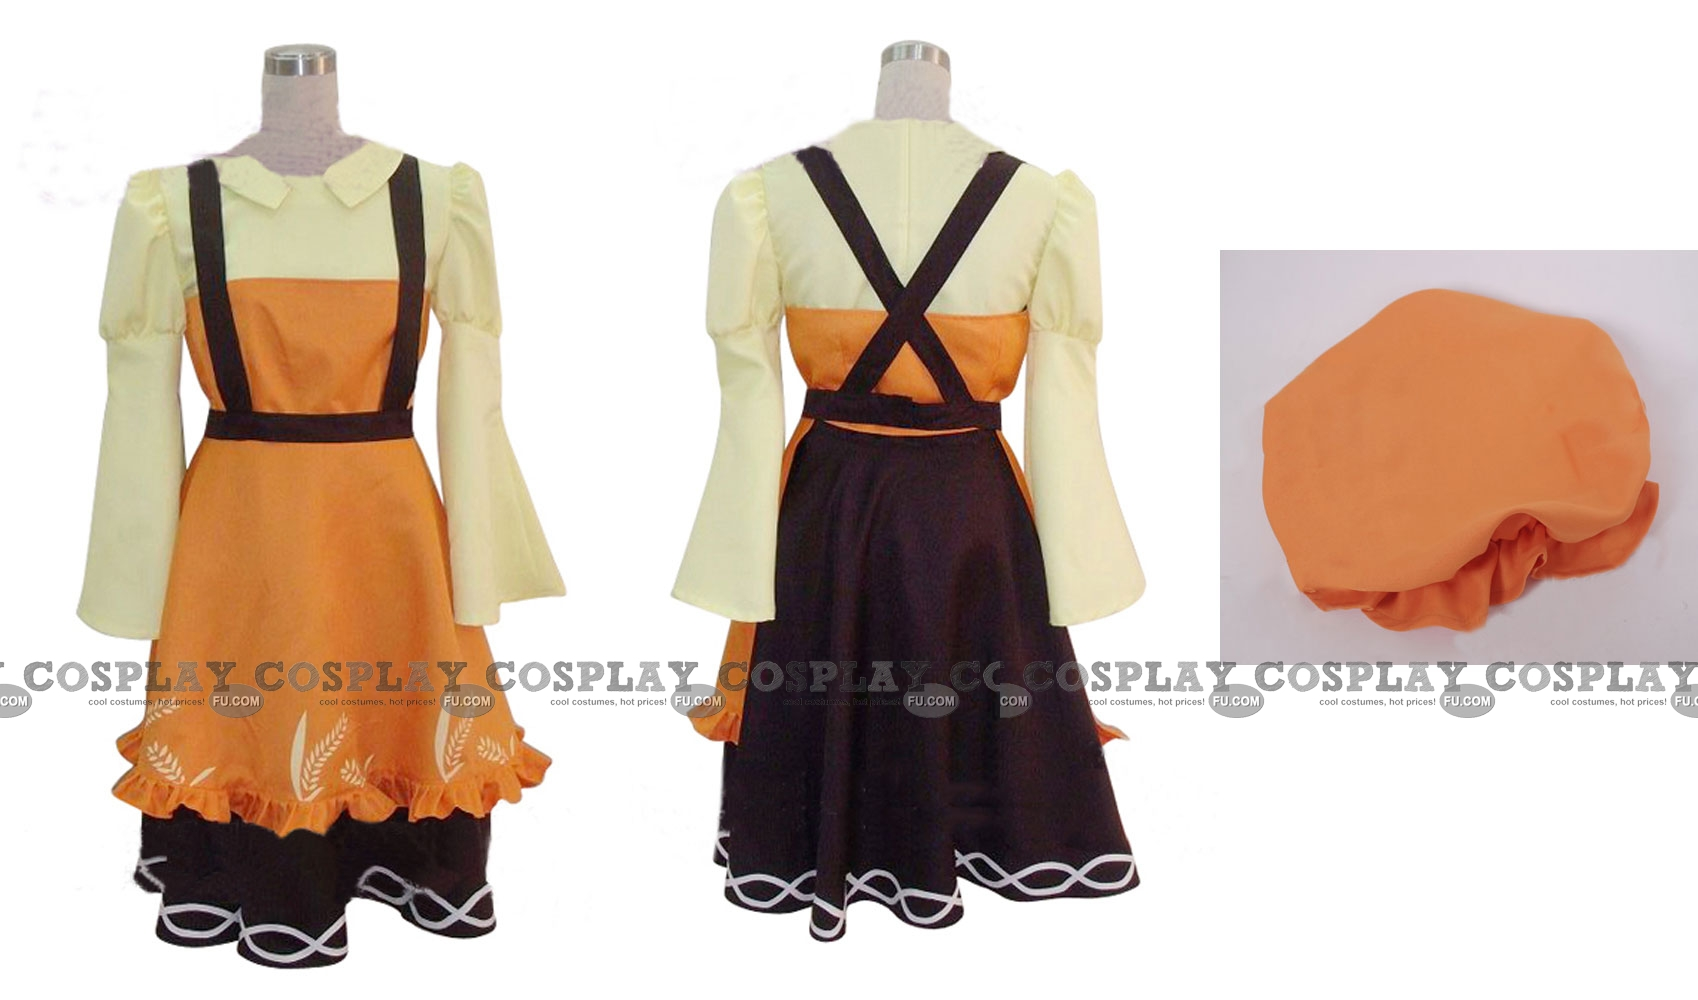 Aki Cosplay Costume (Garage Kits) from Touhou Project